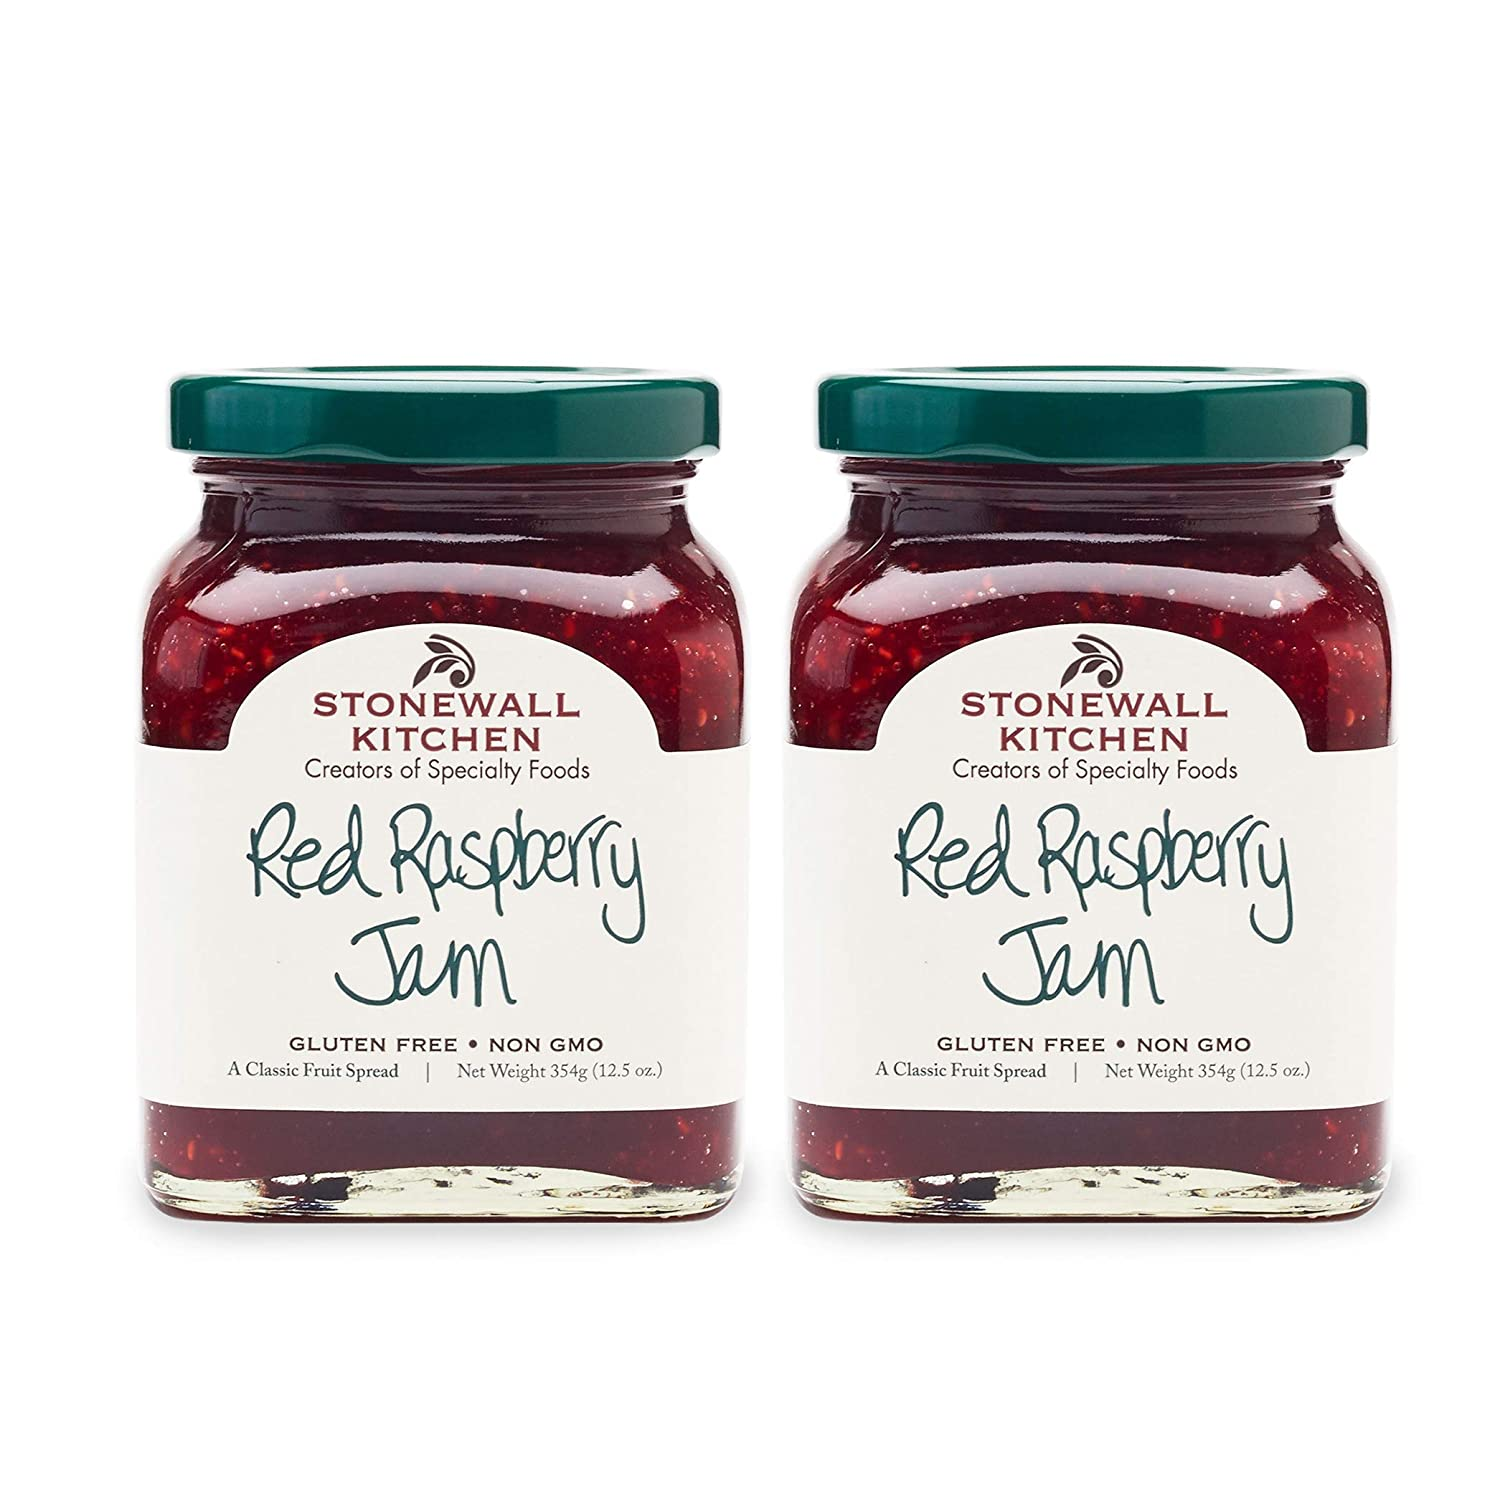 Stonewall Kitchen Red Raspberry Jam Pack Ounce 2 New popularity 12.5 shipfree of